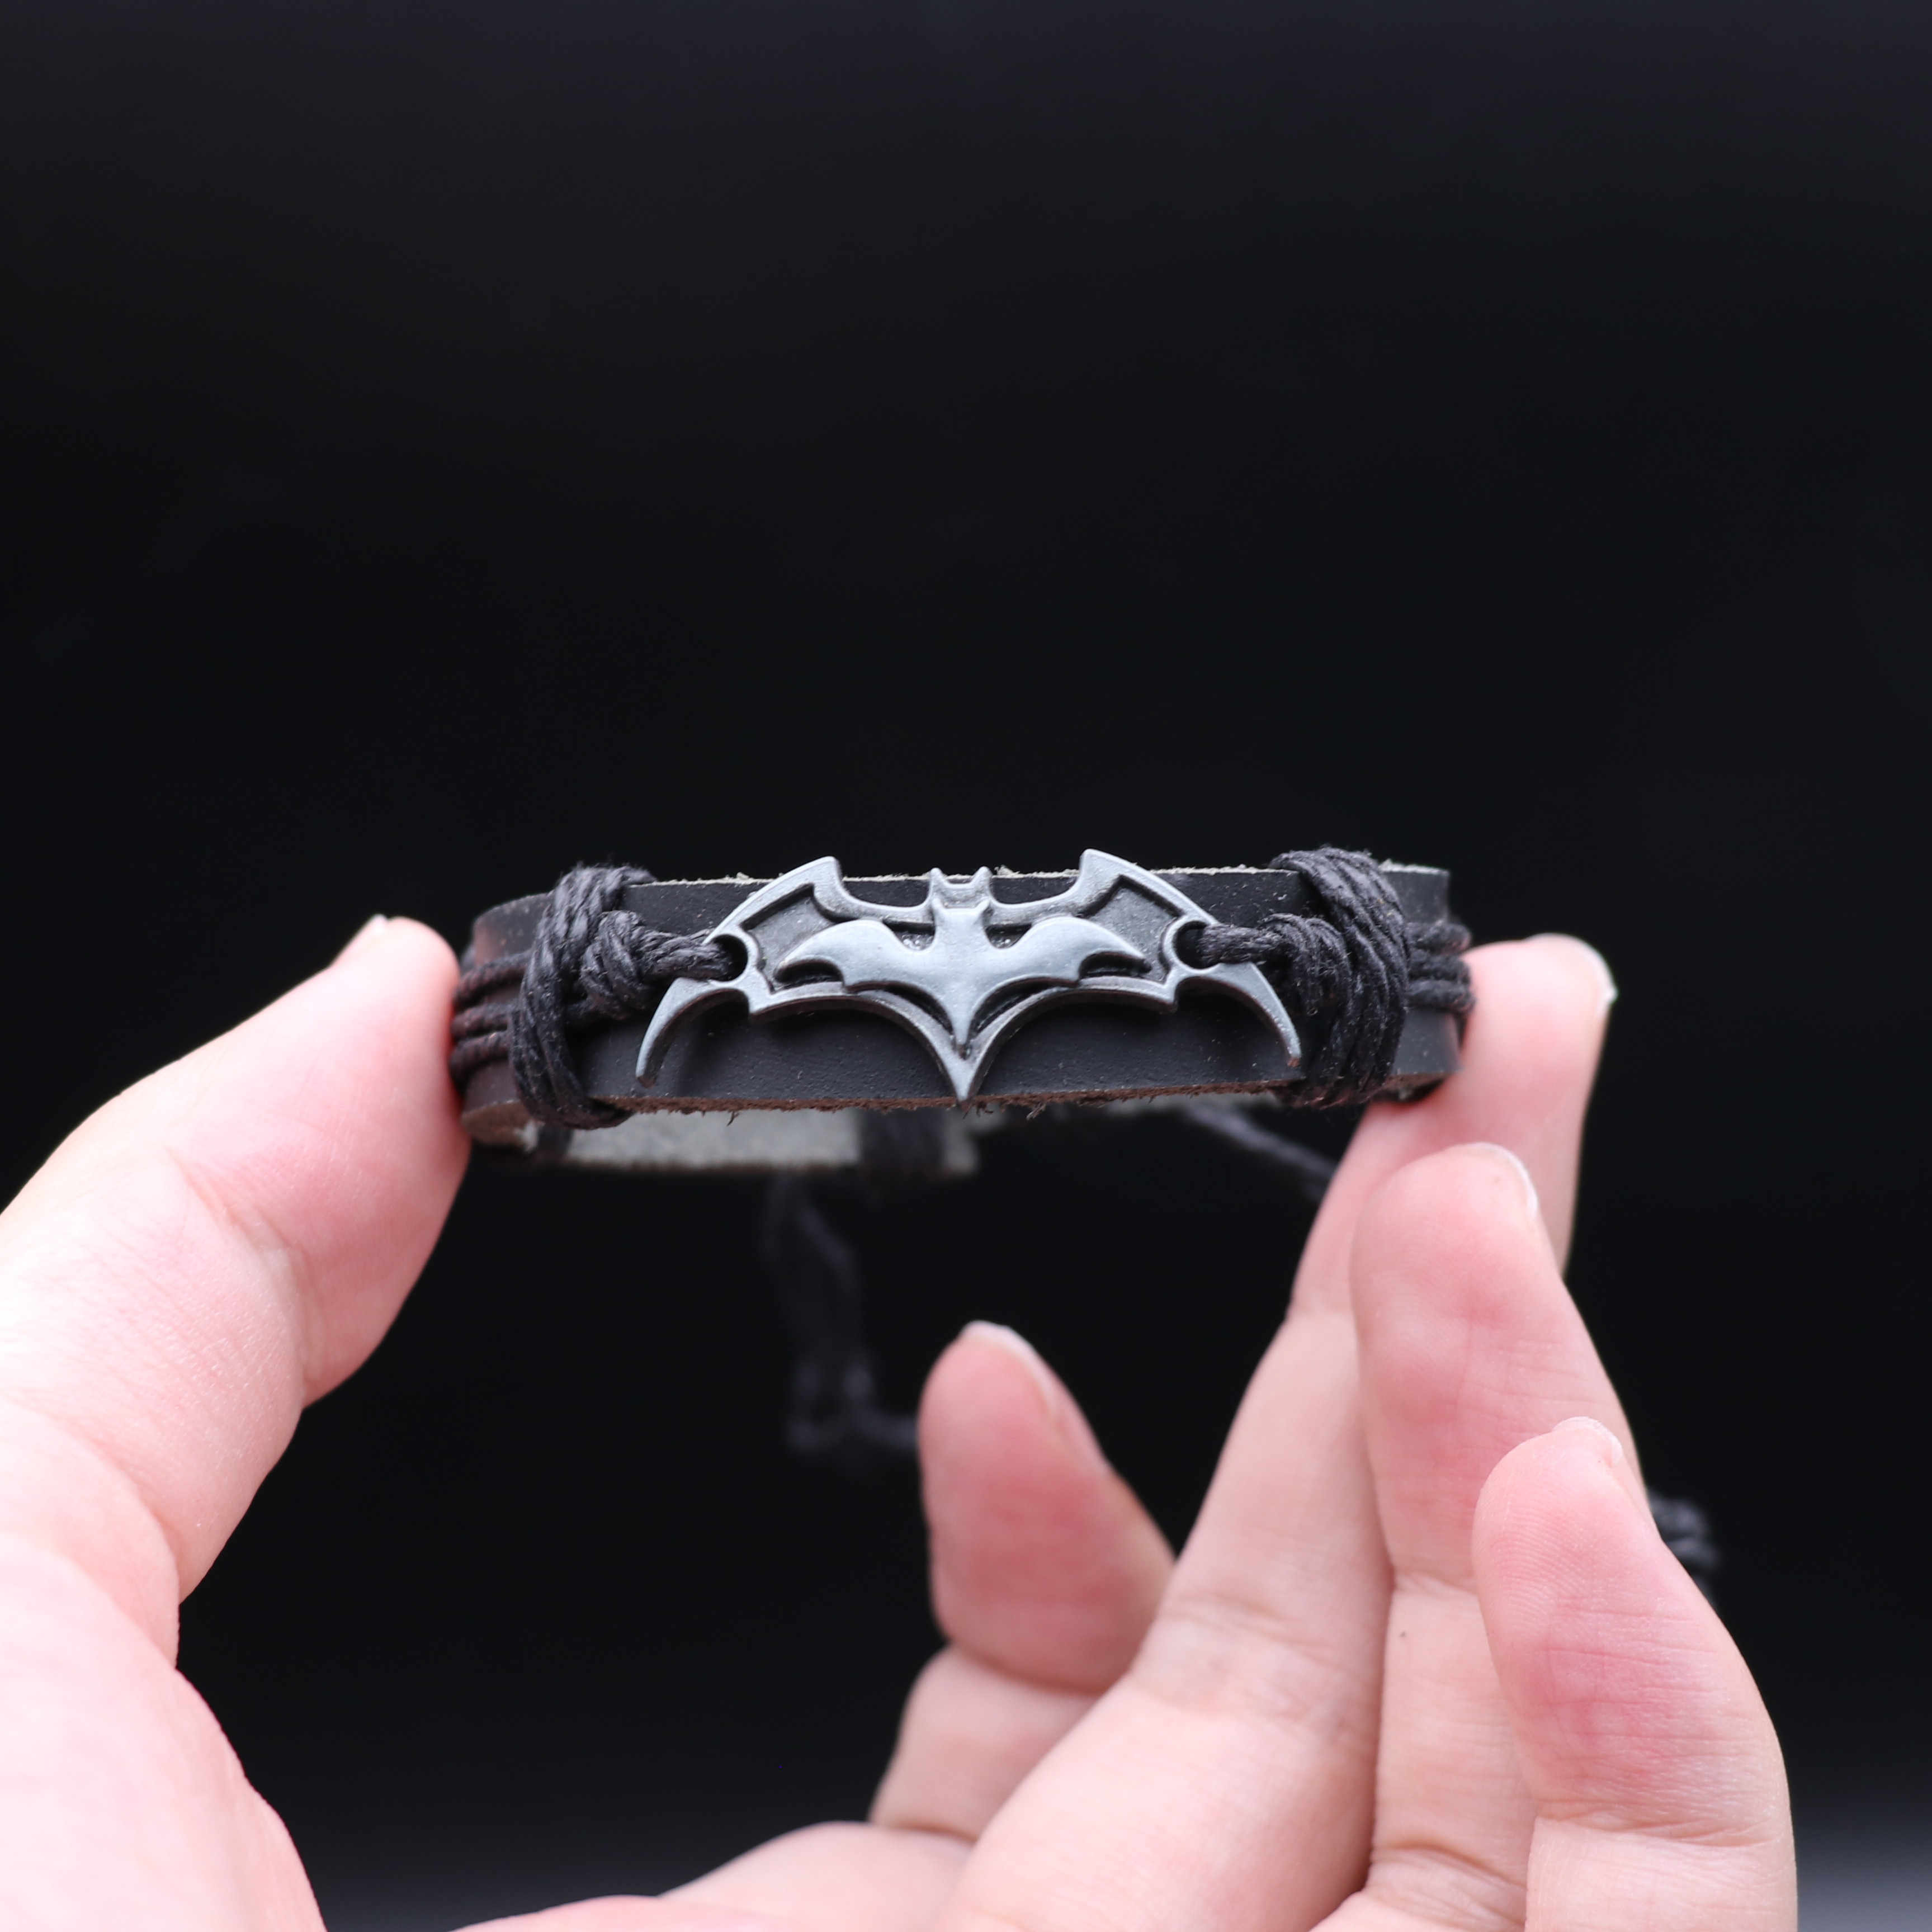 Nouveau film chaud Batman Bracelet Bruce Wayne Cosplay Badge cattlecacher tricot alliage Bracelet noir marron Fans cadeau Europe